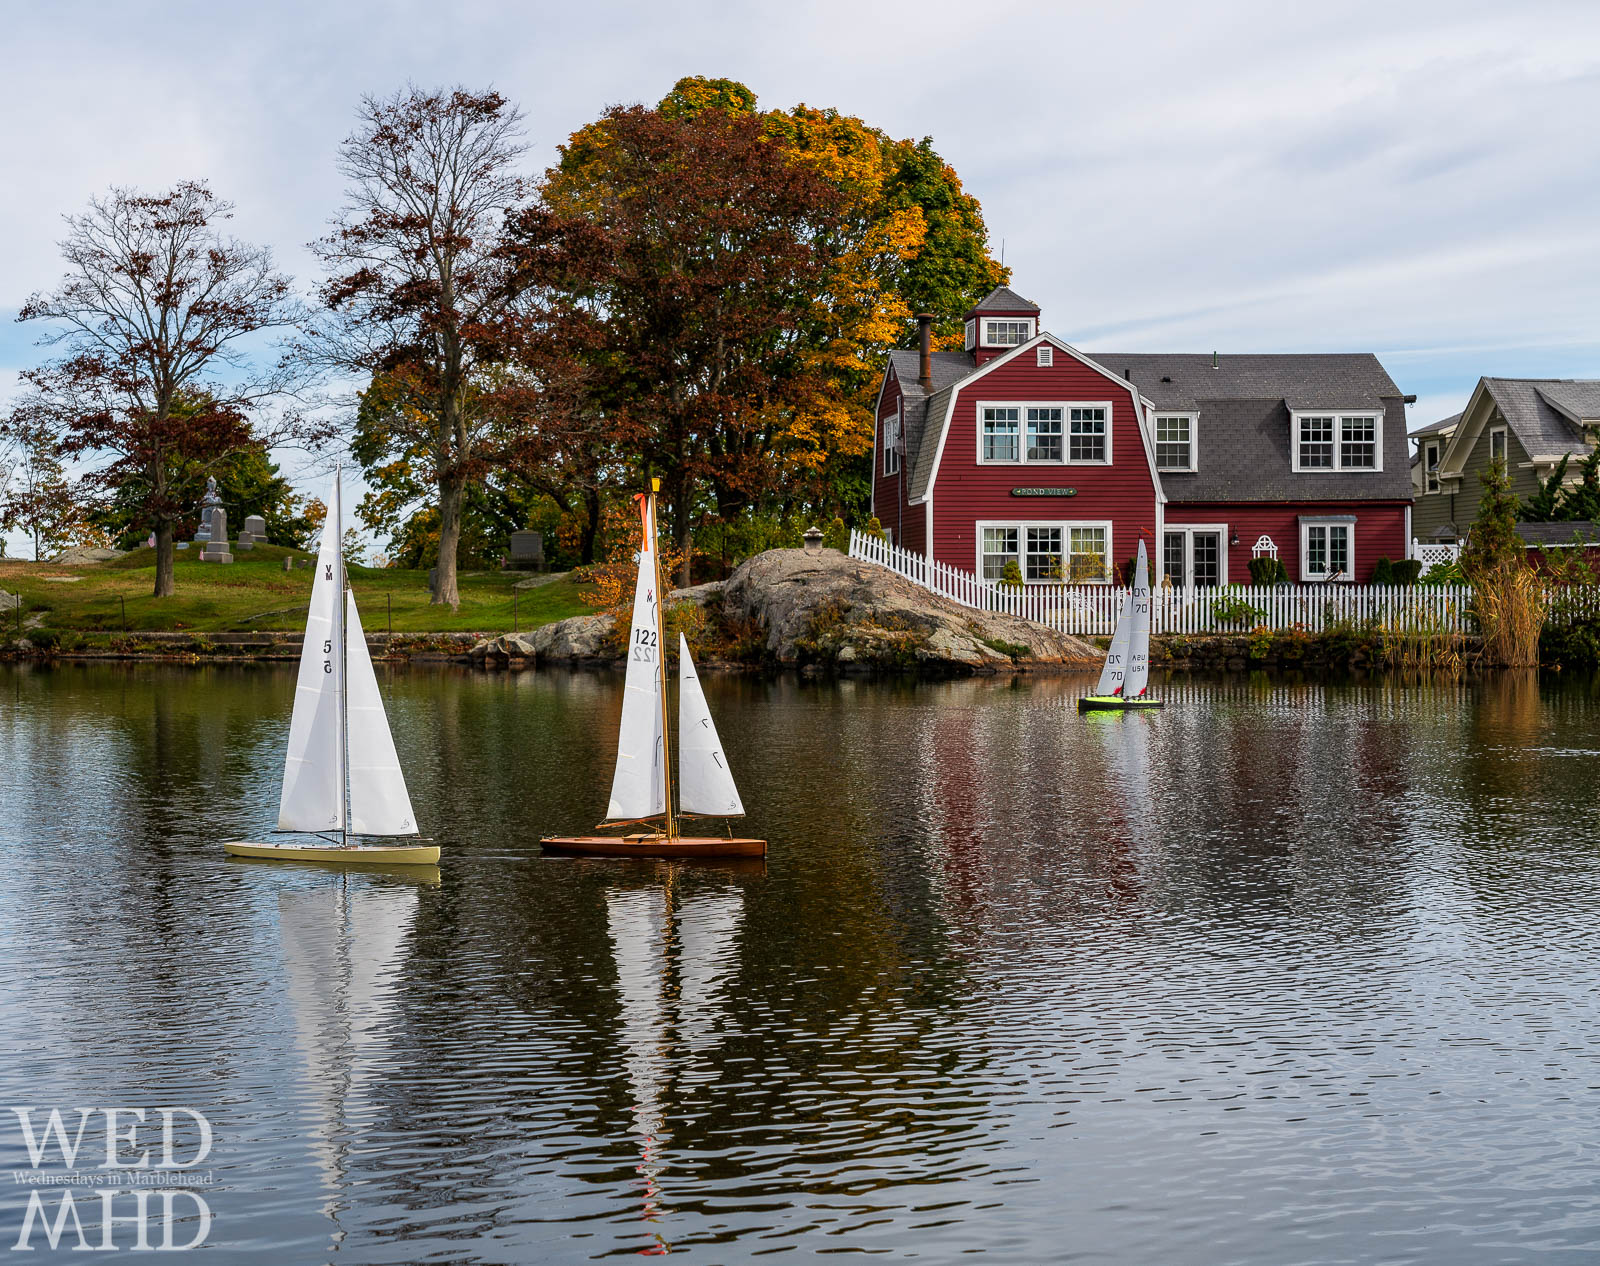 Foliage at Old Burial Hill sets the scene for the fall regatta at Redd's Pond with model sailboats cutting through the water